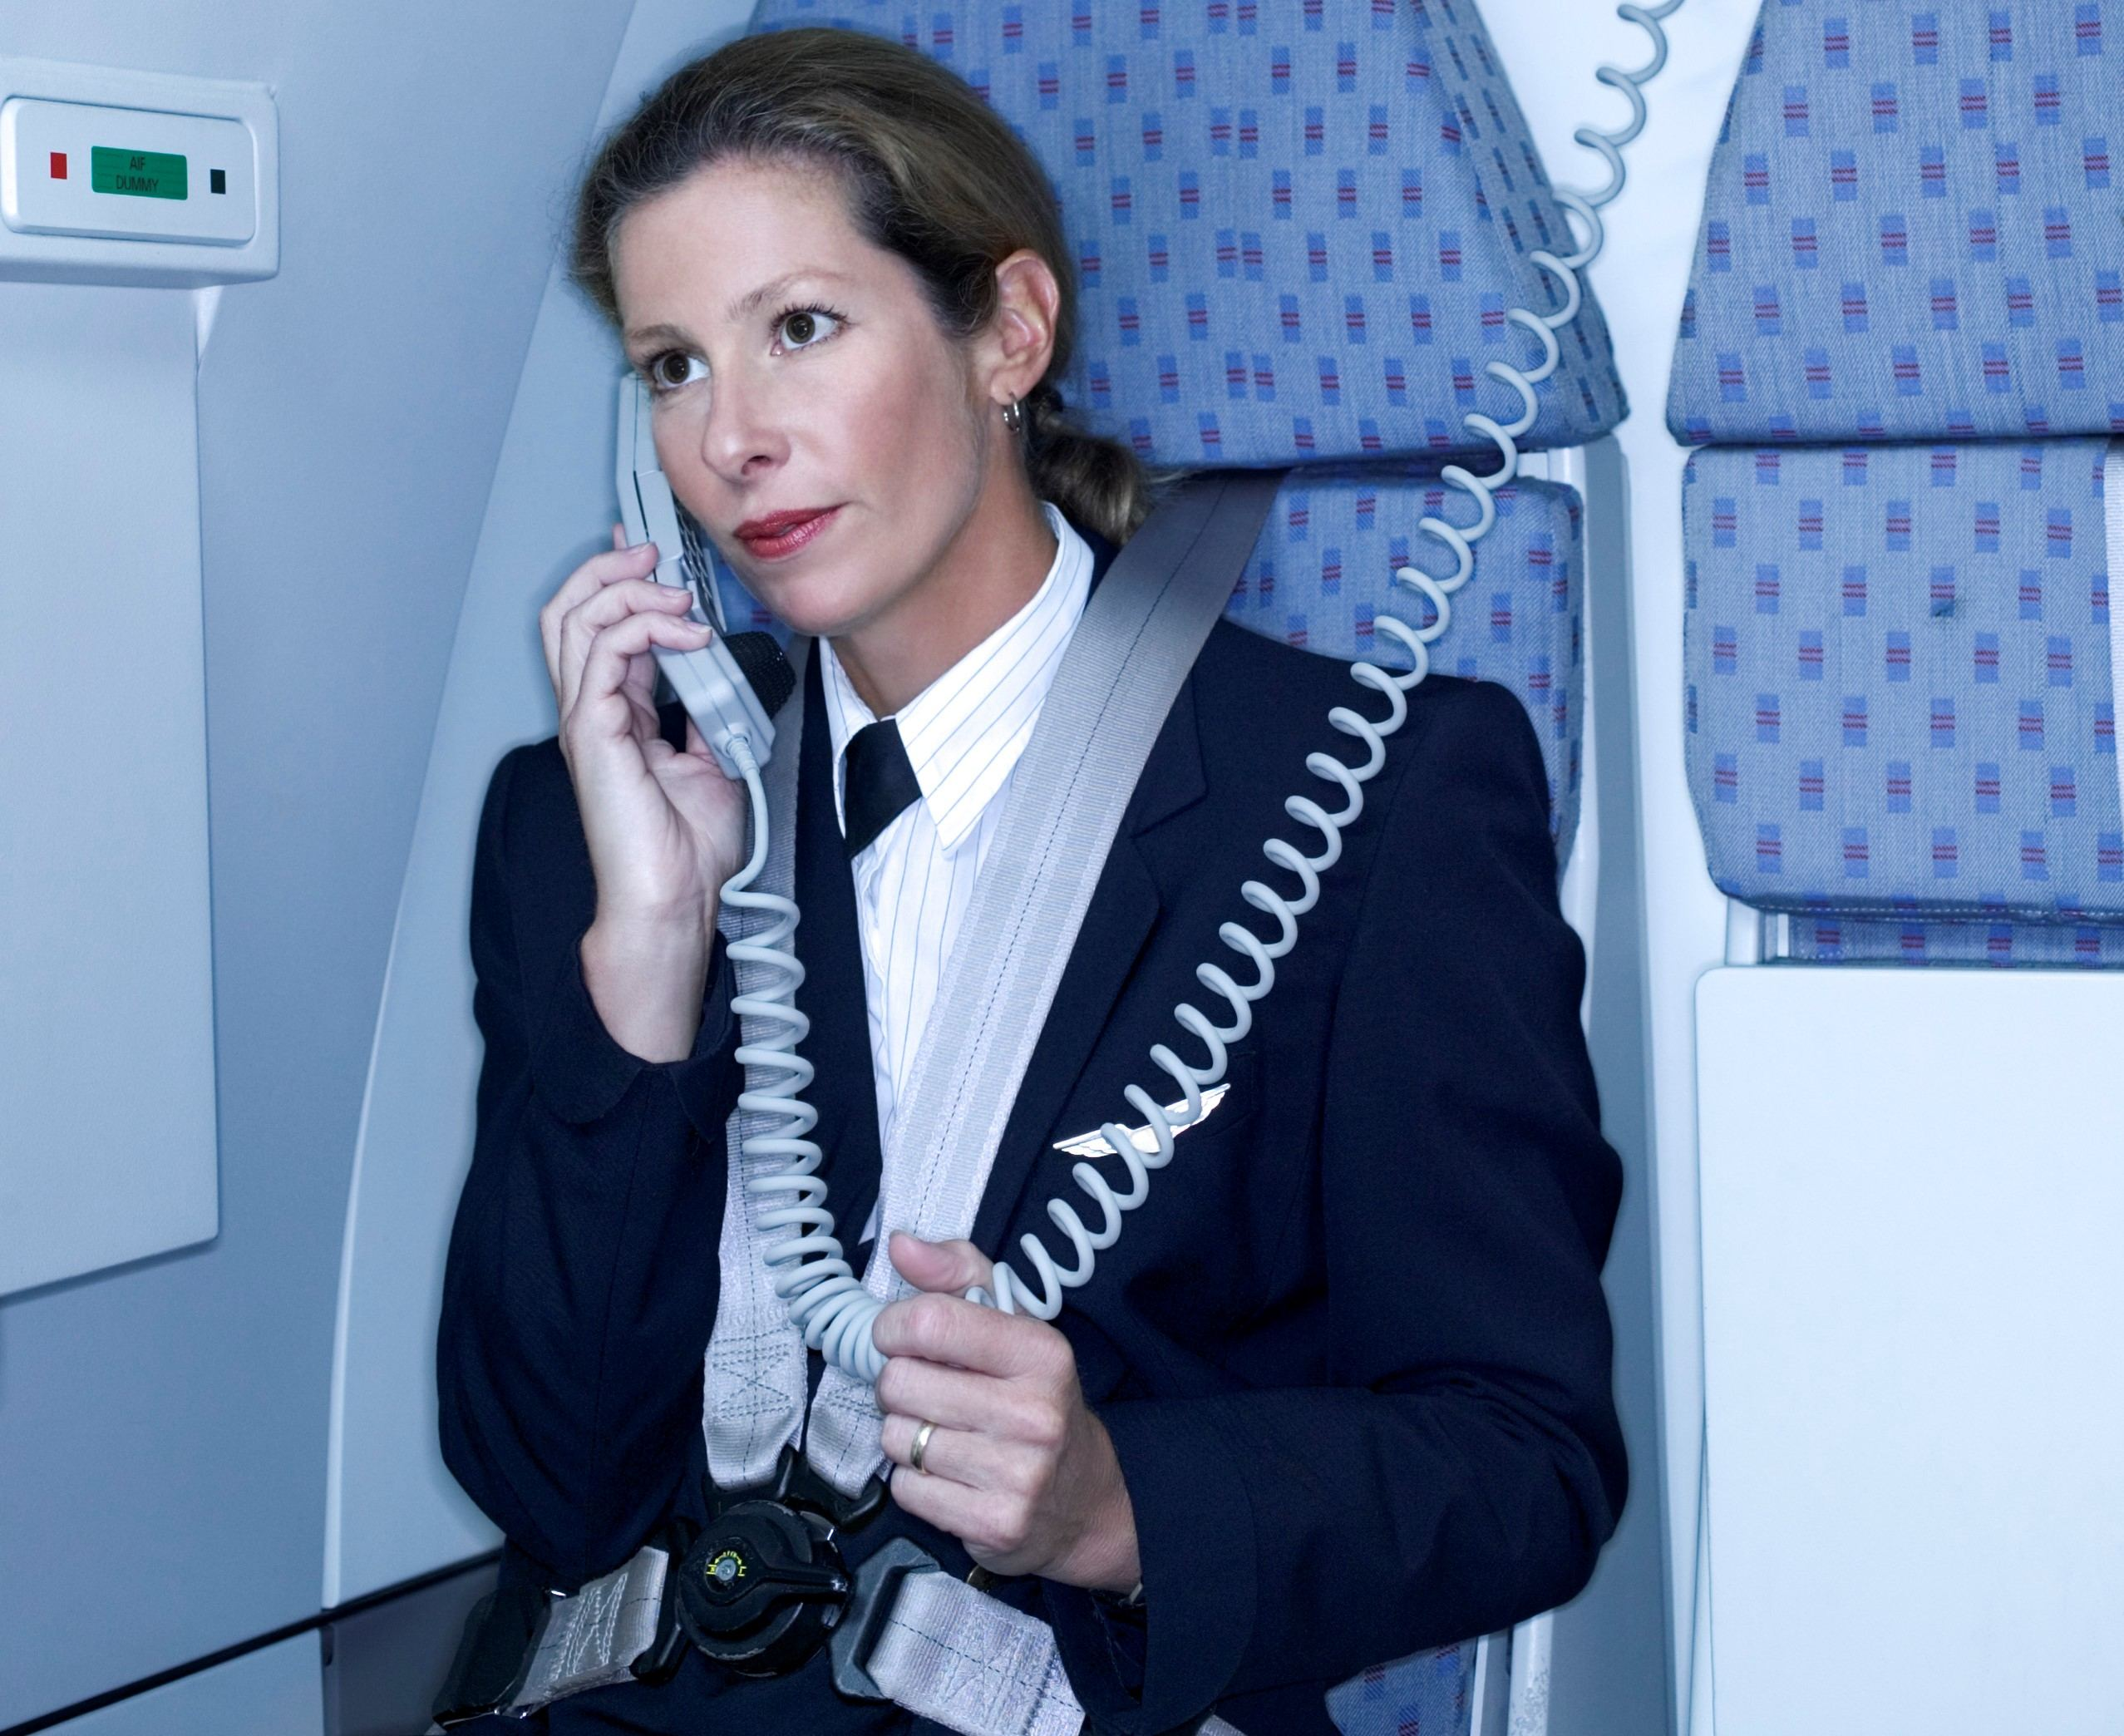 Flight attendant using the phone on an airplane